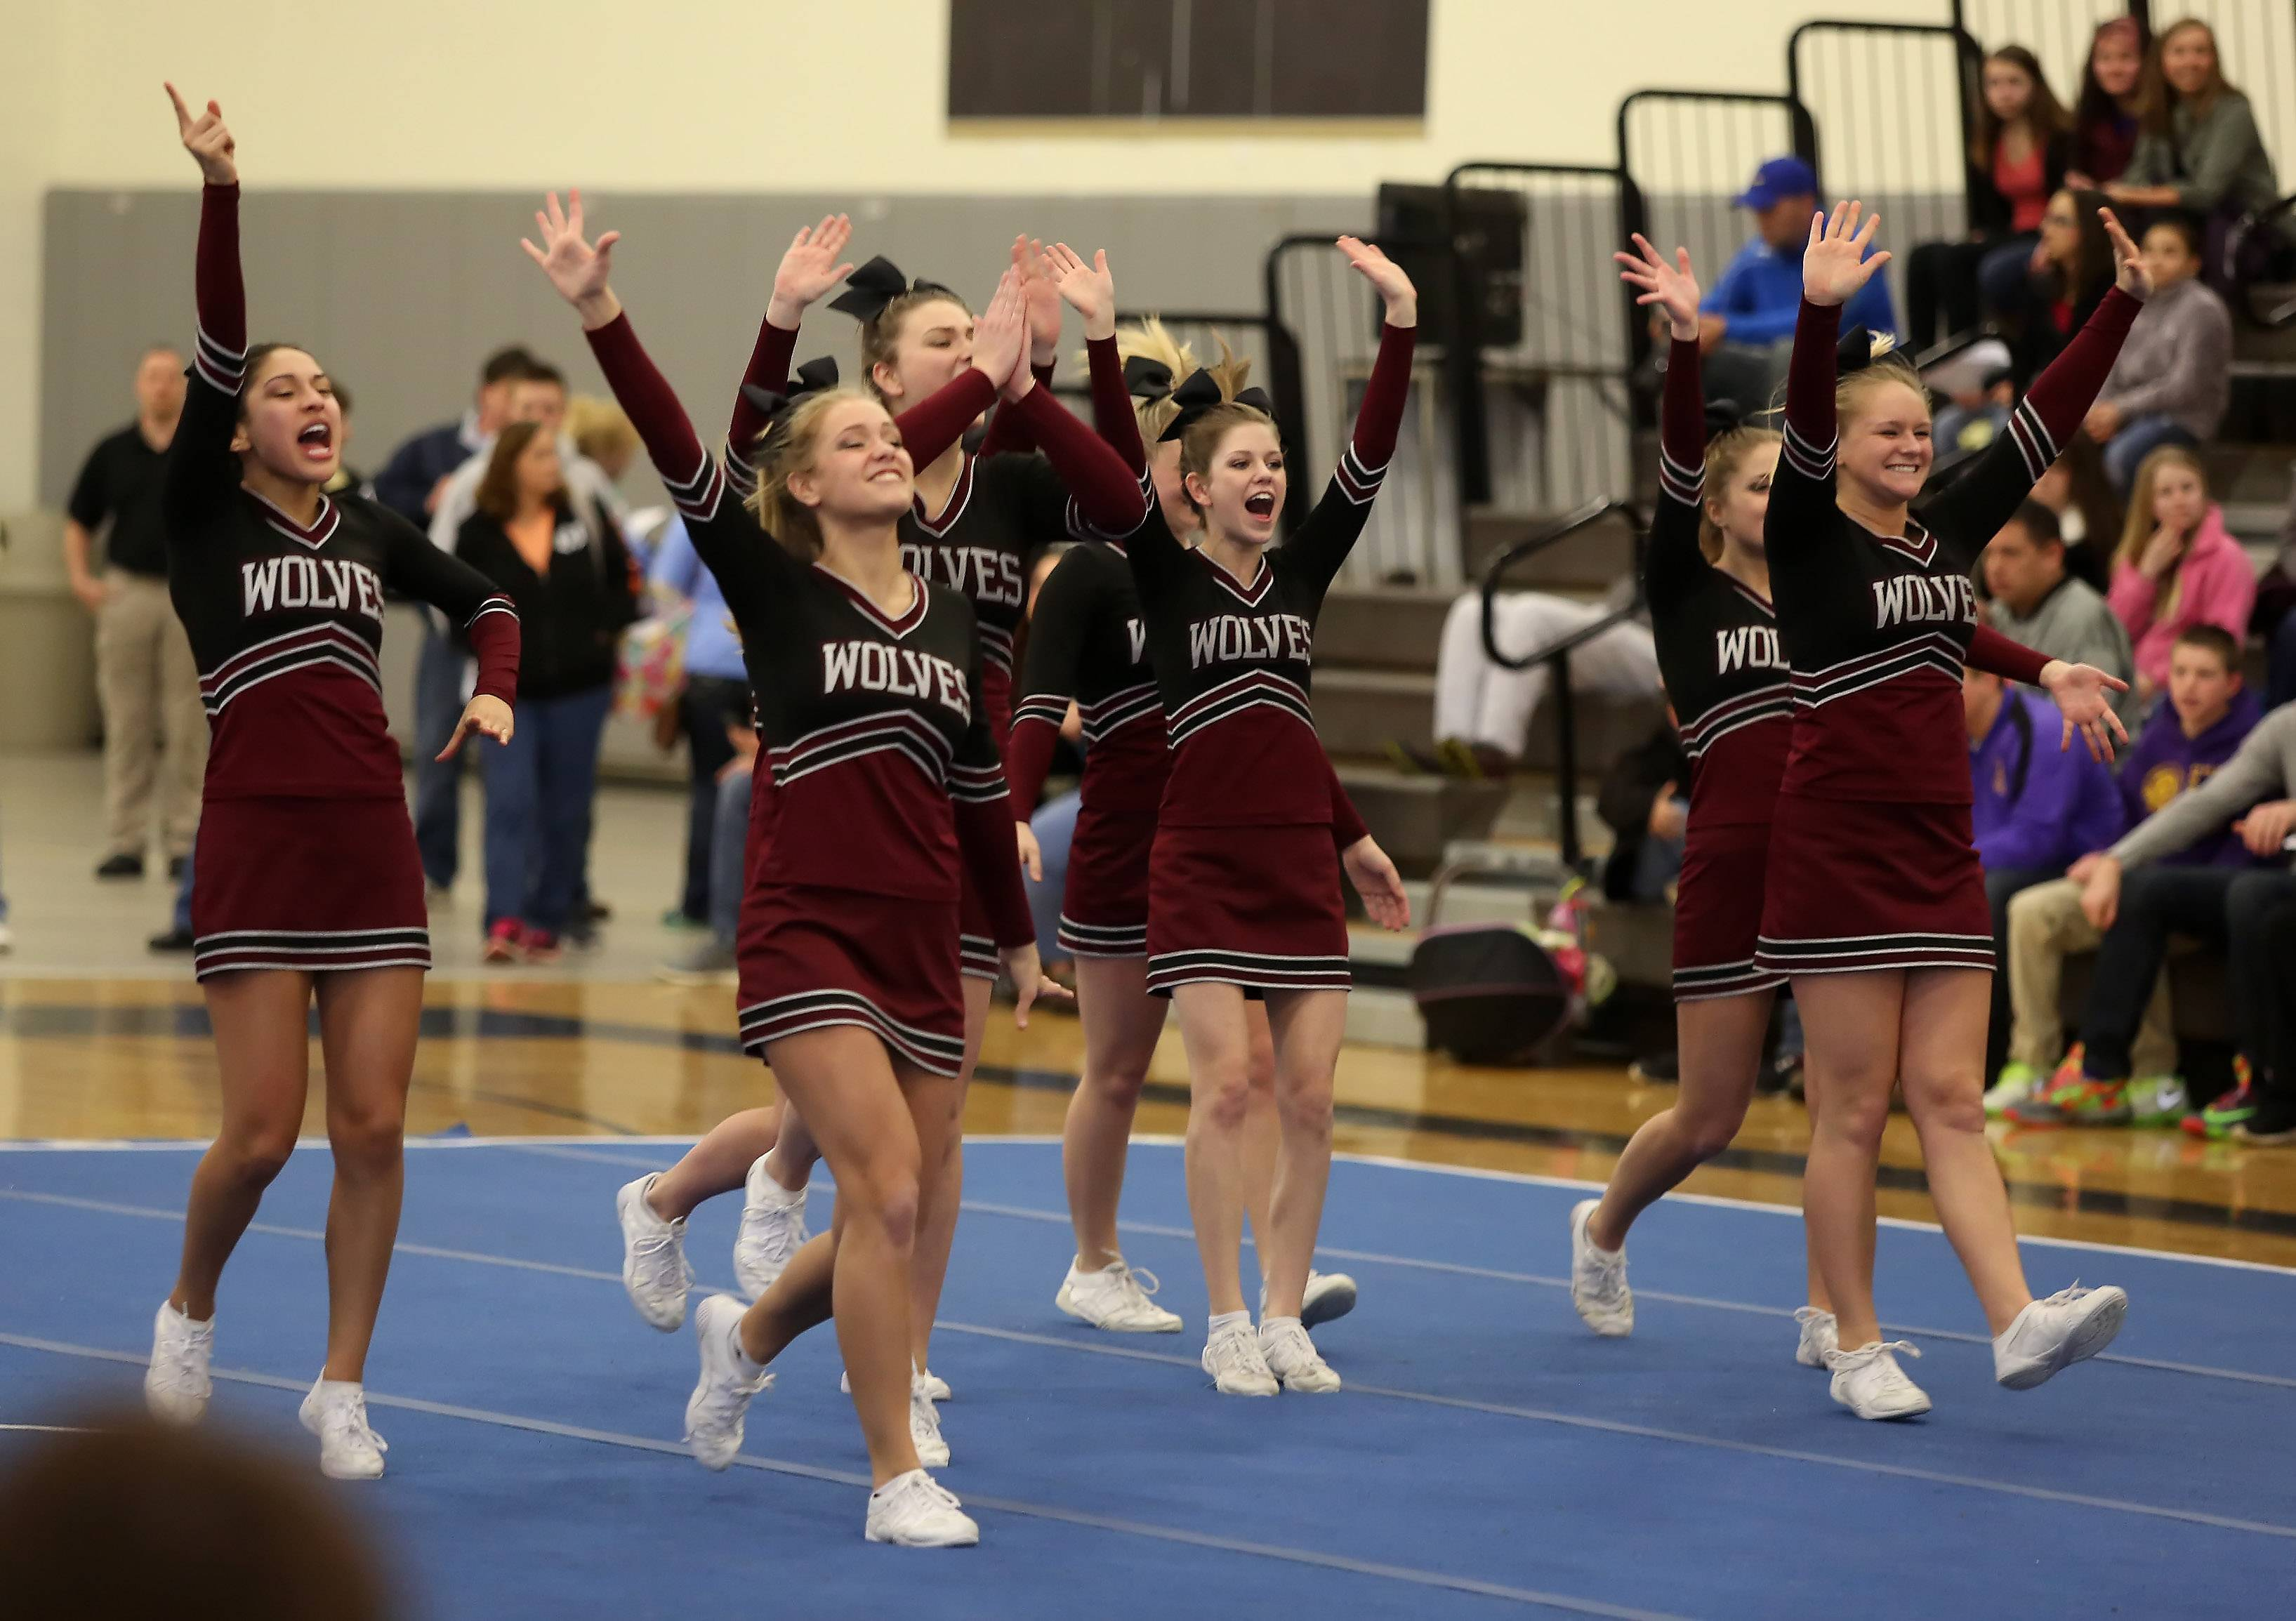 Prairie Ridge High School competes in the Large Team category during the IHSA Cheerleading Sectional Sunday hosted by Grayslake North High School.